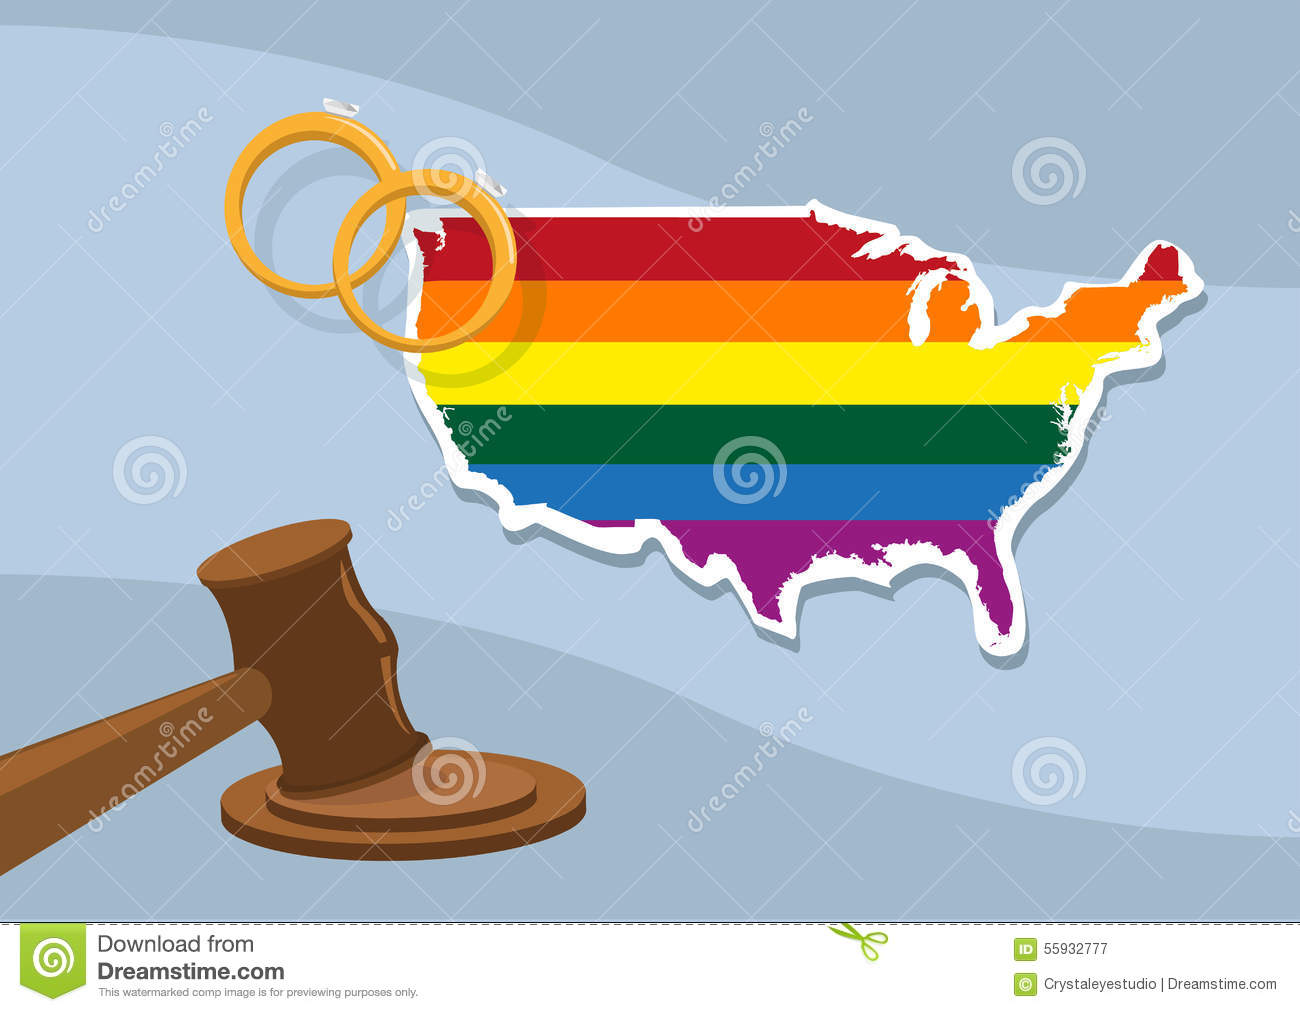 a question of the homosexual couple idea in the united states For many if not most people, moreover, marriage is not a trivial matter  in the  united states, however, as in most modern nations, government holds those keys   same-sex couples, still thinks that marriage goes too far because of this idea .